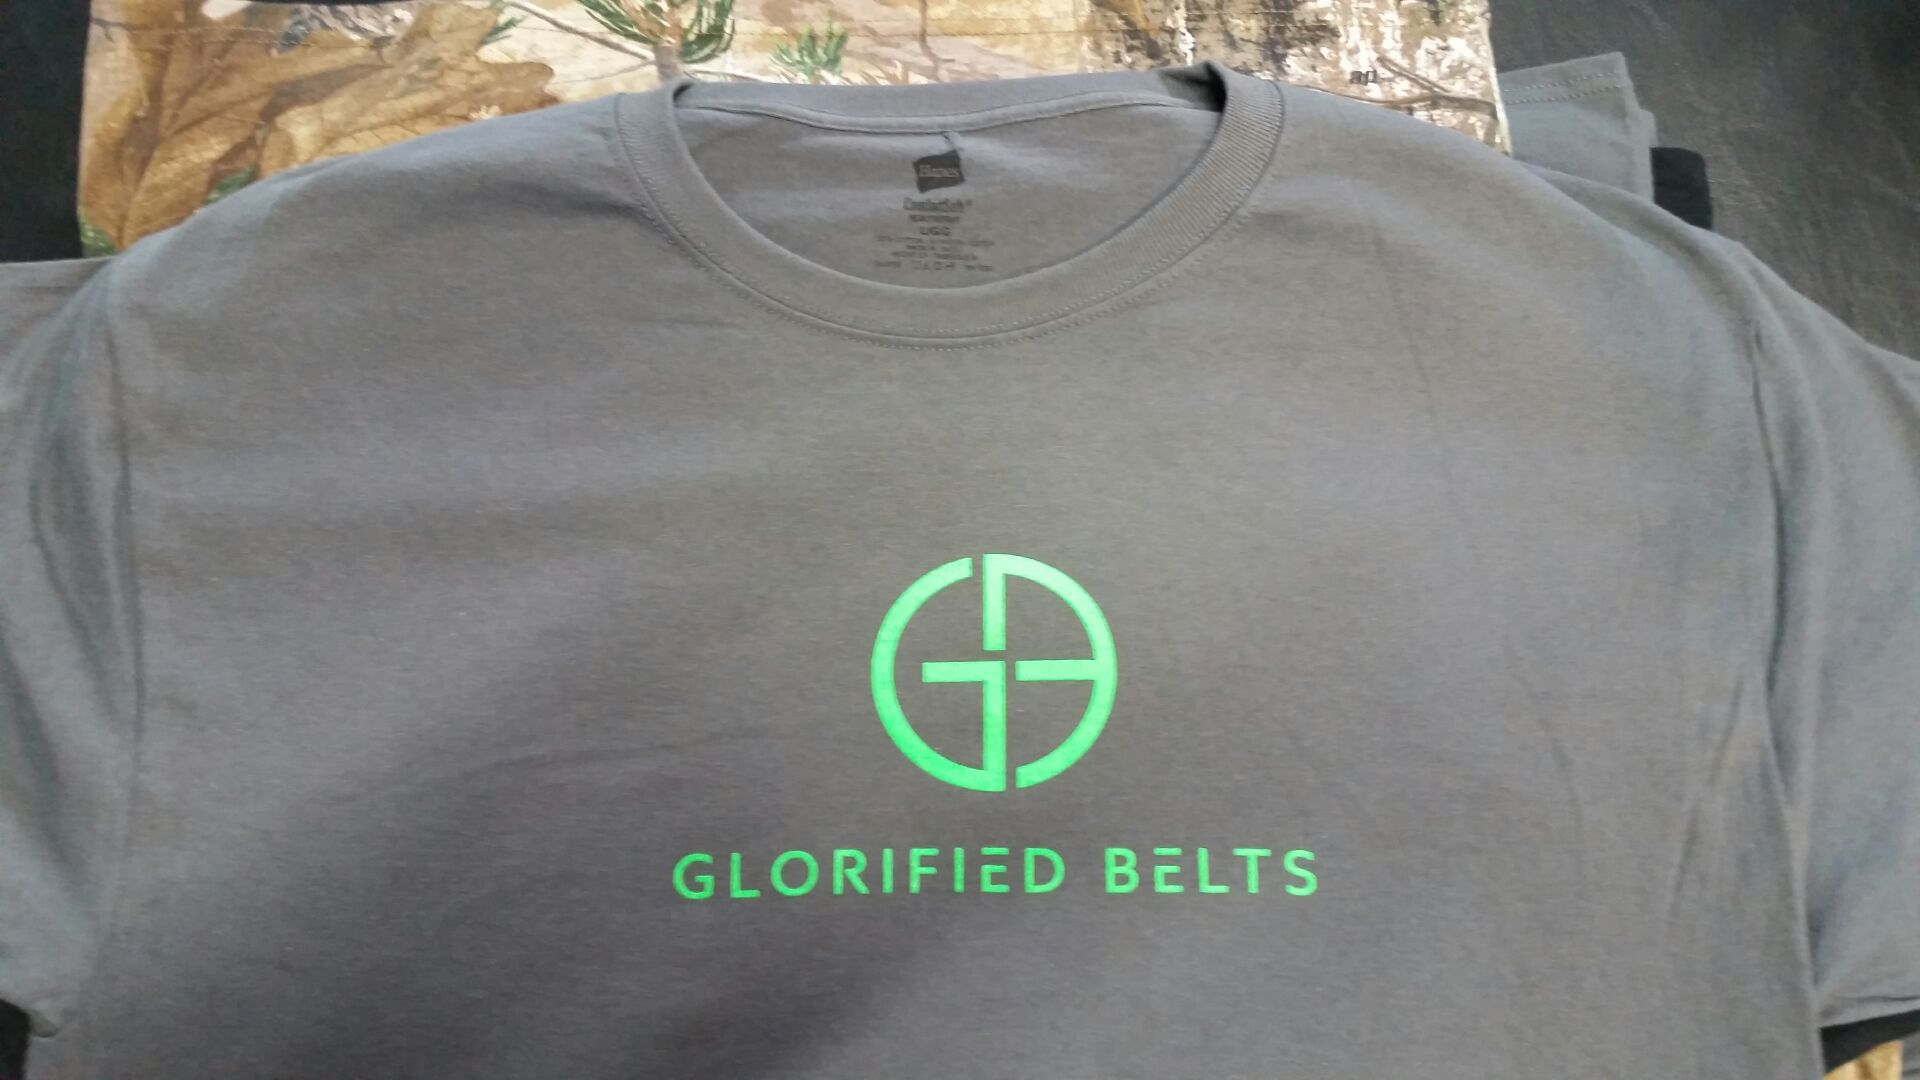 Glorified Belts.jpg